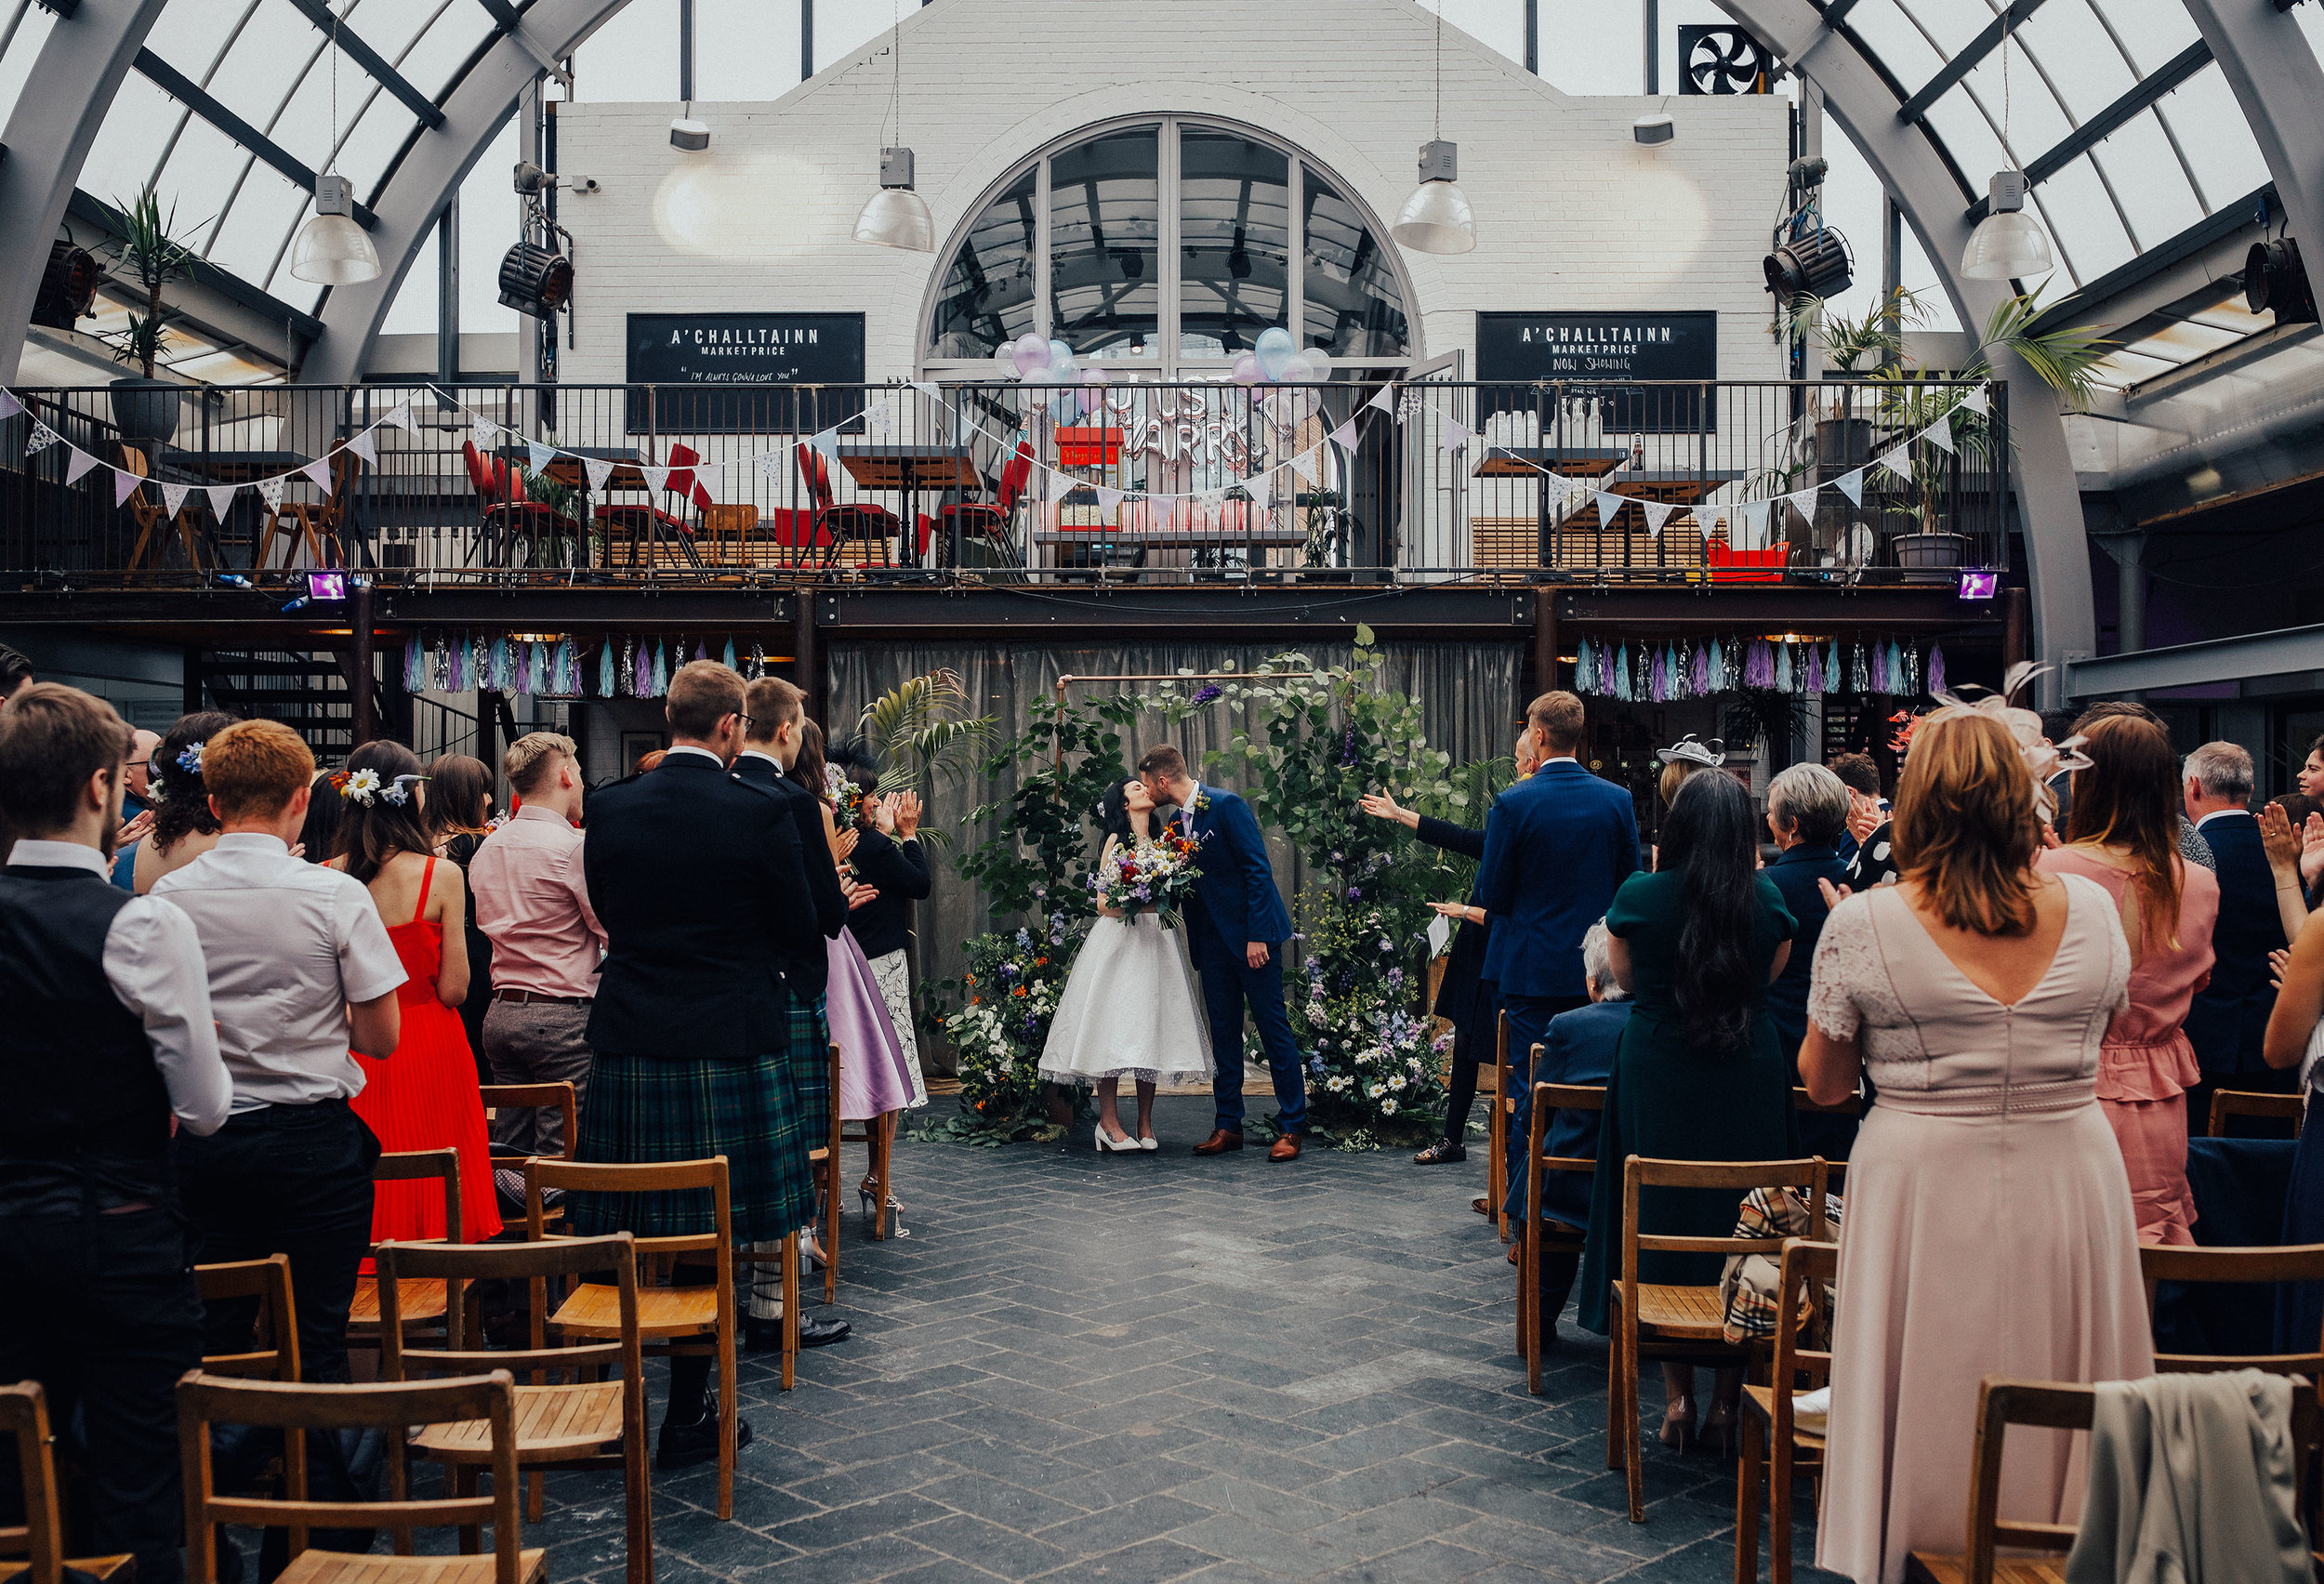 PJ_PHILLIPS_PHOTOGRAPHY_2018_SCOTLAND_WEDDING_PHOTOOGRAPHER_277.jpg